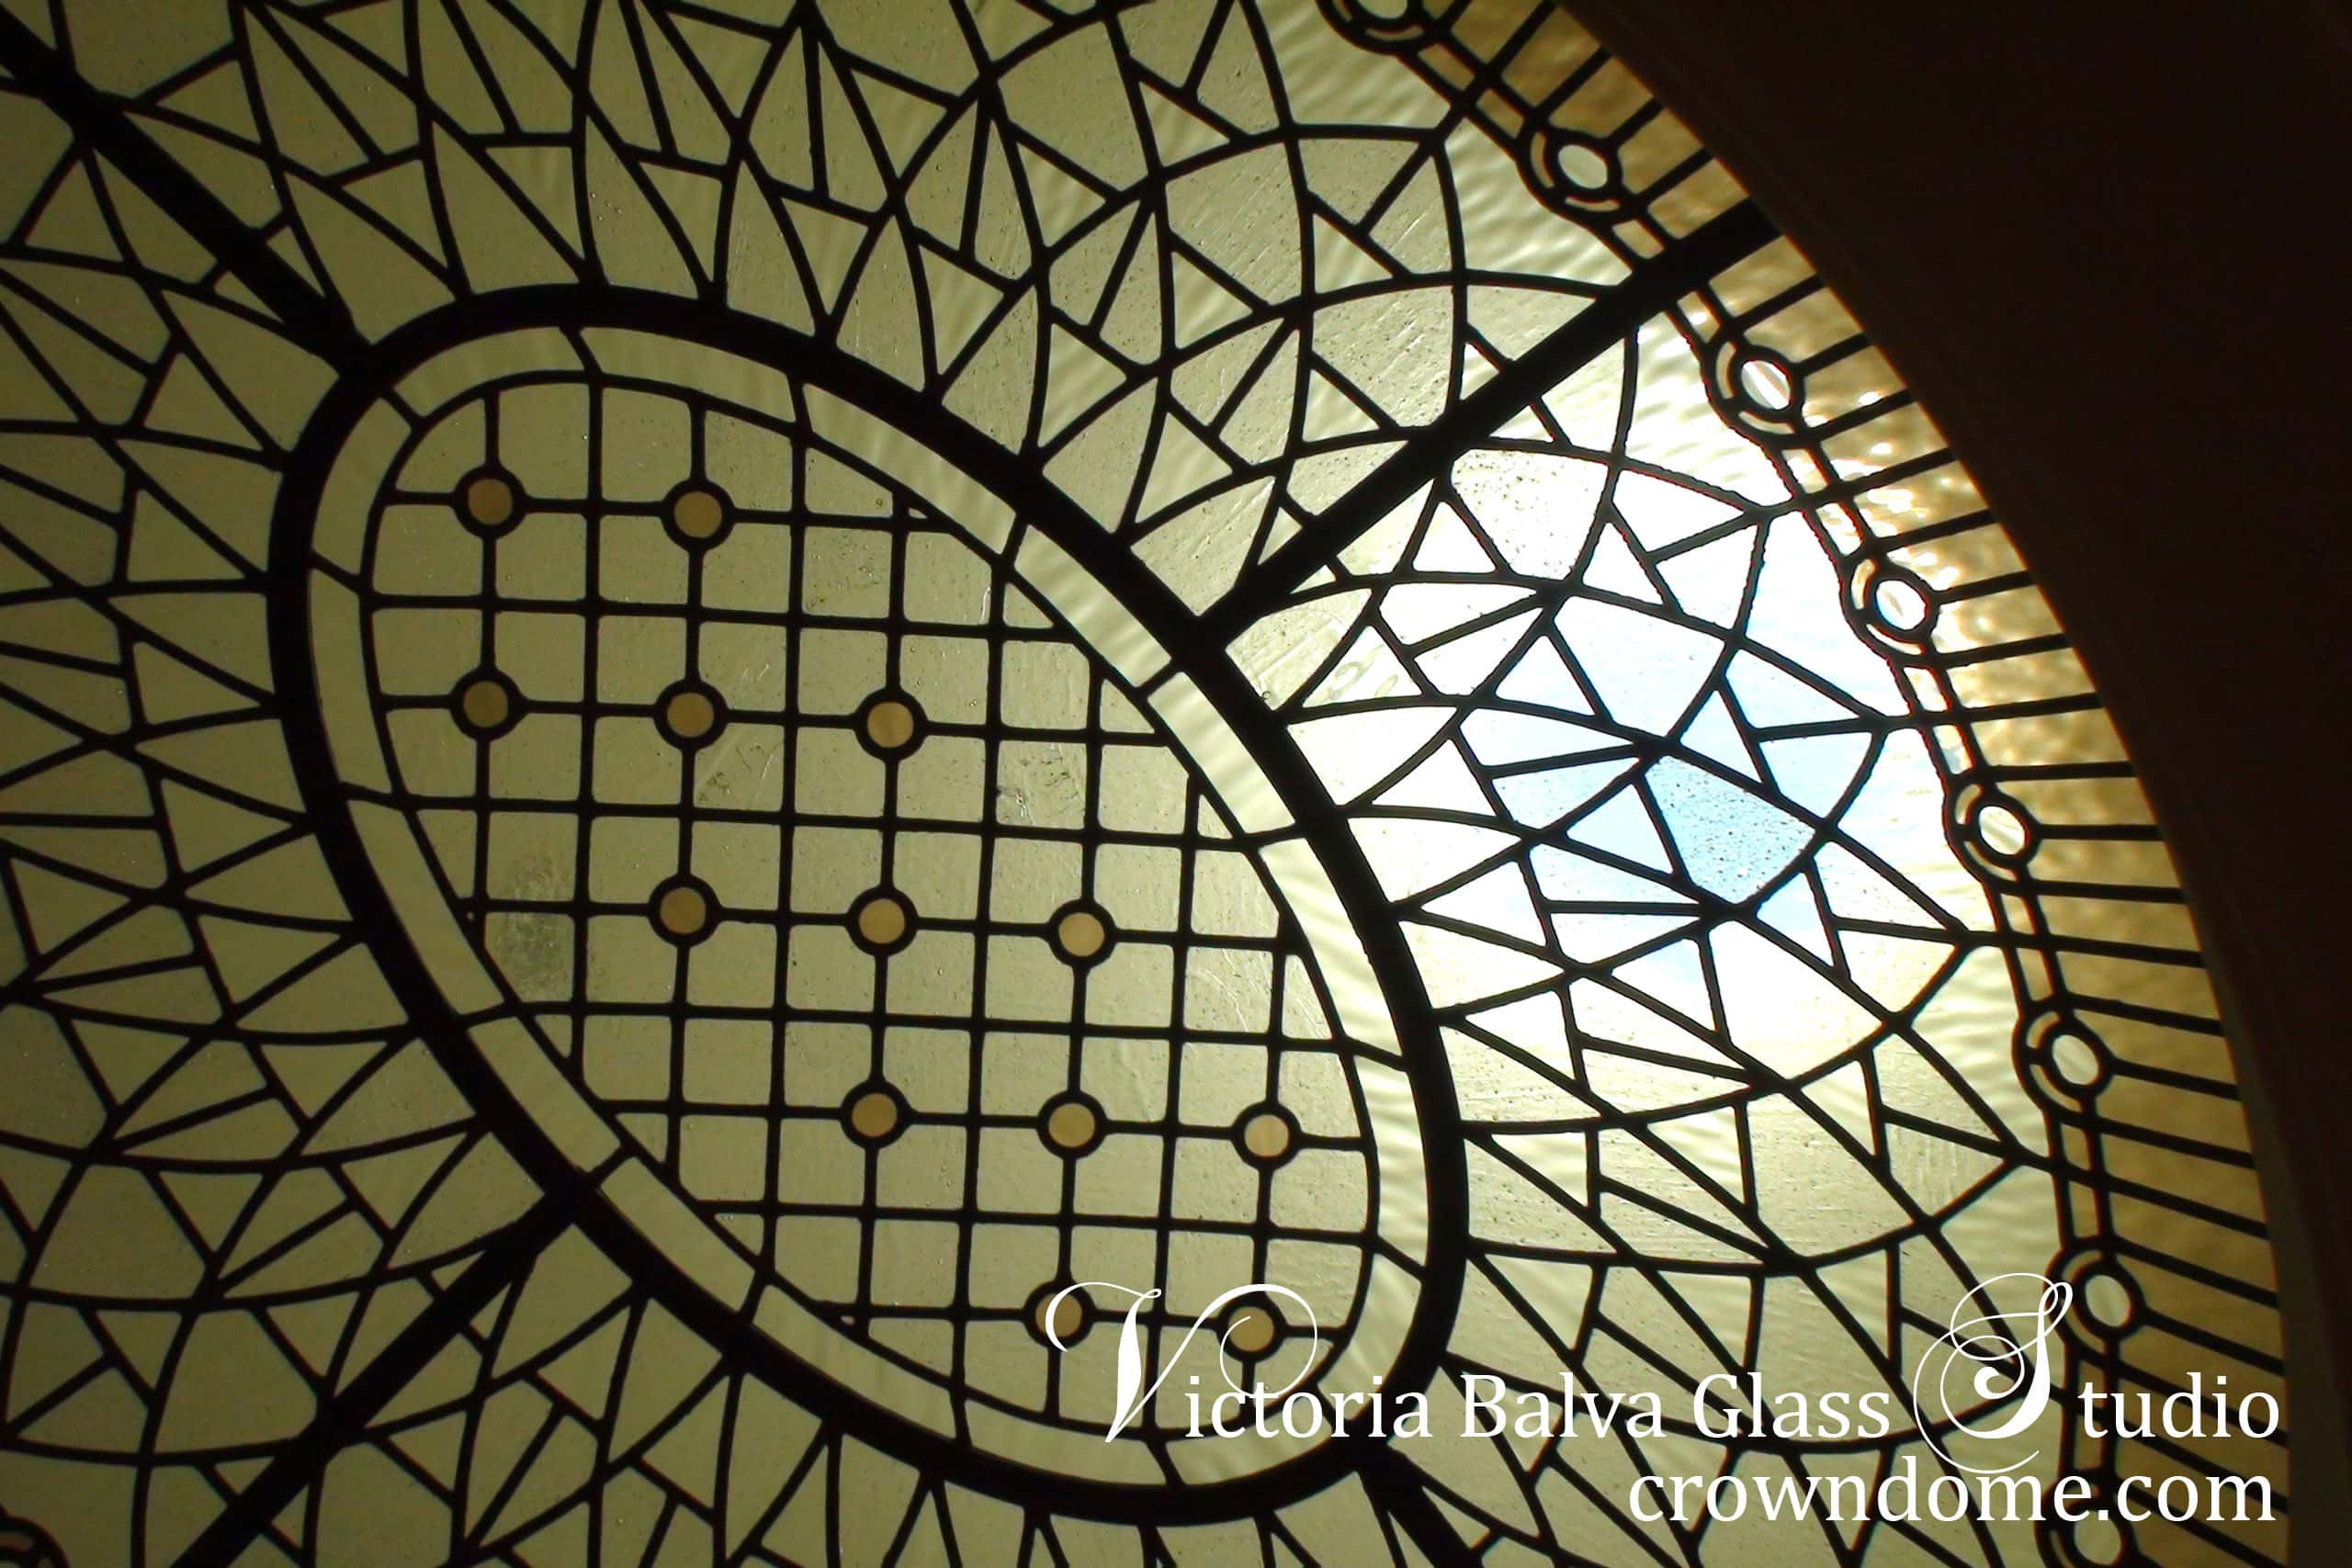 Small stained leaded glass oval dome skylight ceiling for a hallway of a private residence in Toronto. Simple geometric design, antique glass selection, very pale color highlights